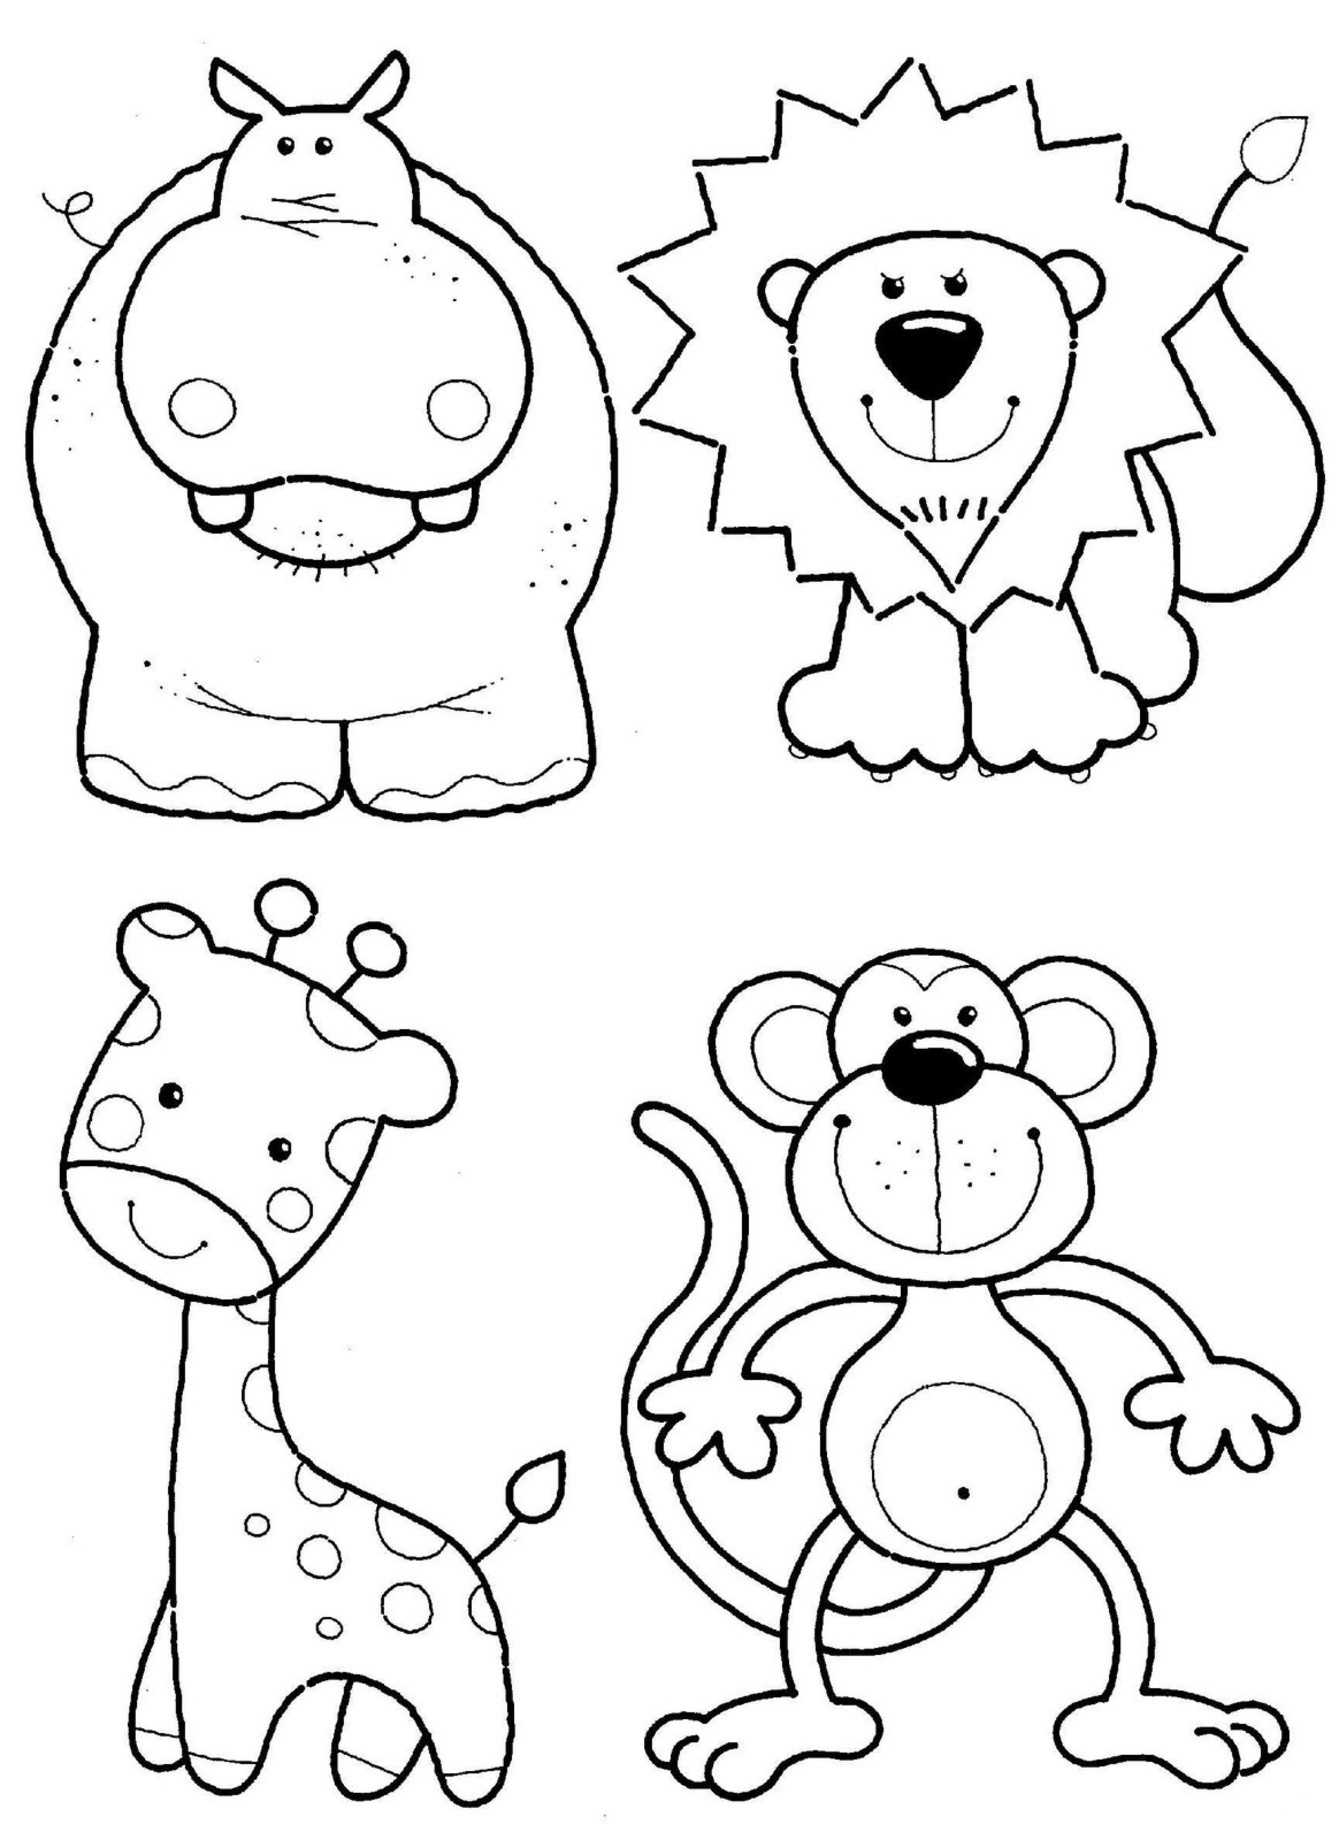 Coloring animal for kids